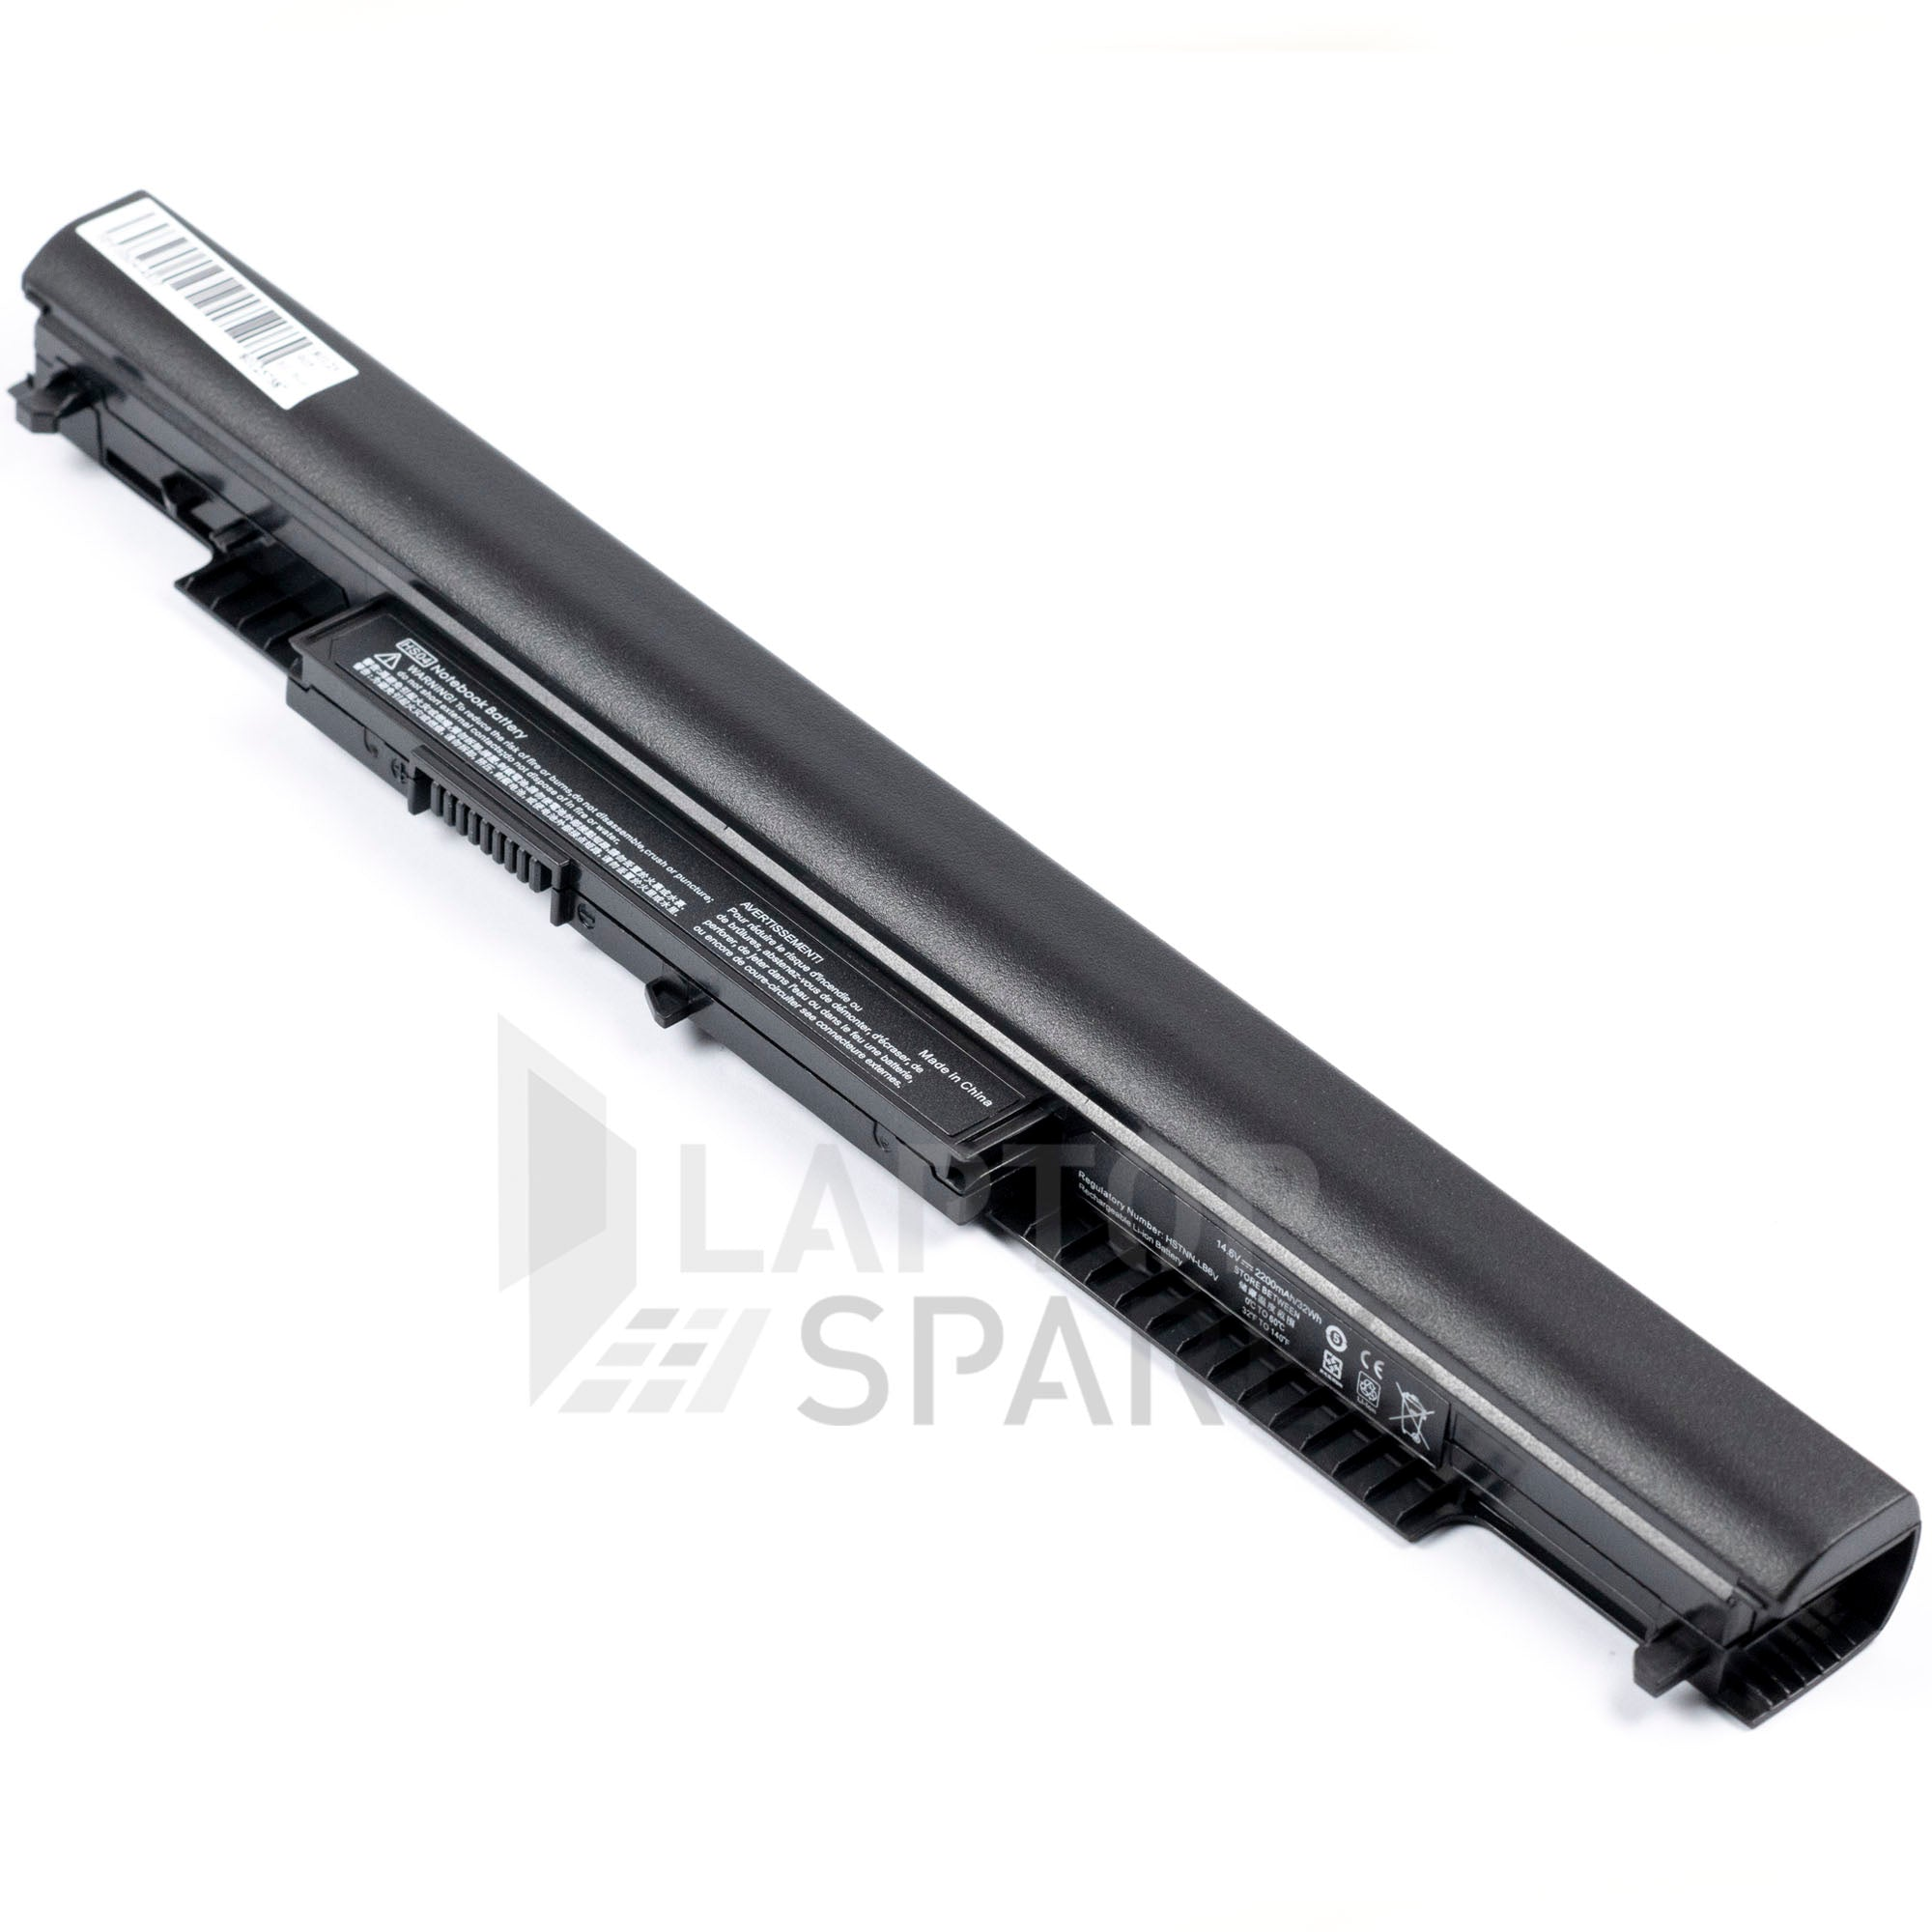 HP Pavilion 15 AC HS04 2200mAh 4 Cell Battery